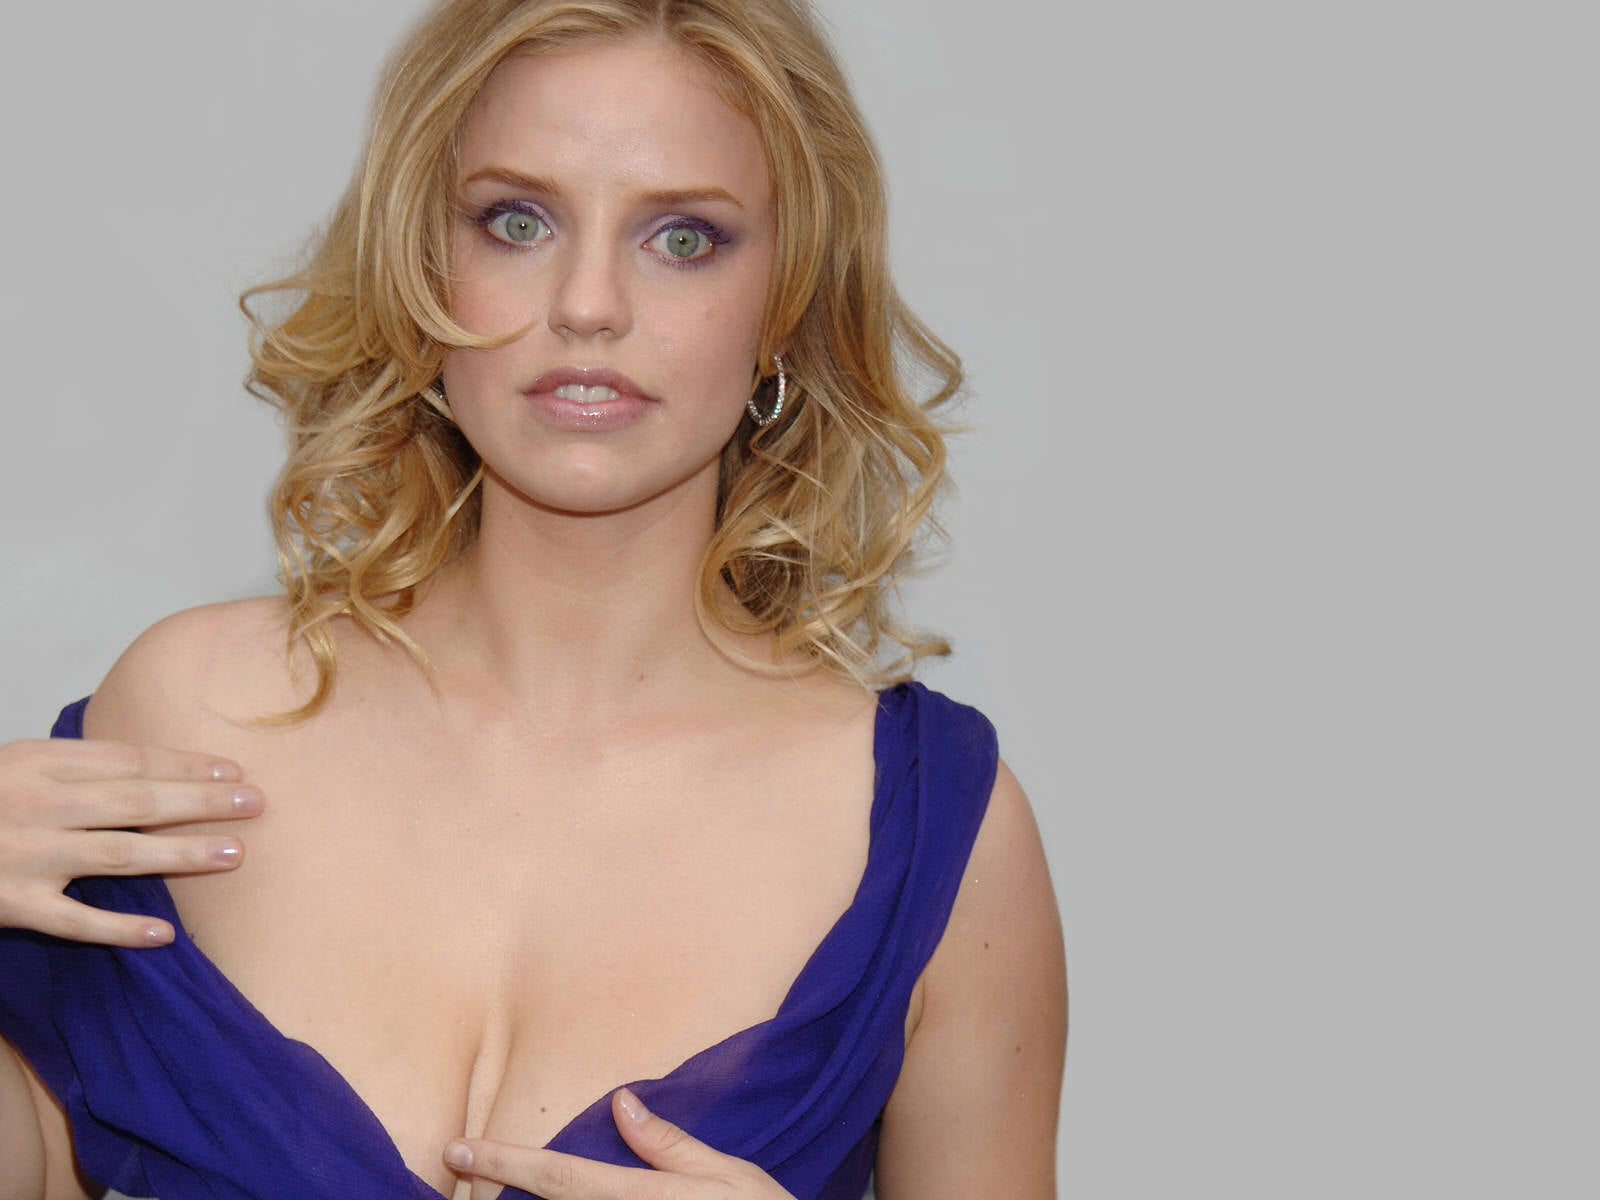 Pictures Kelli Garner nudes (69 photos), Pussy, Is a cute, Twitter, cleavage 2015